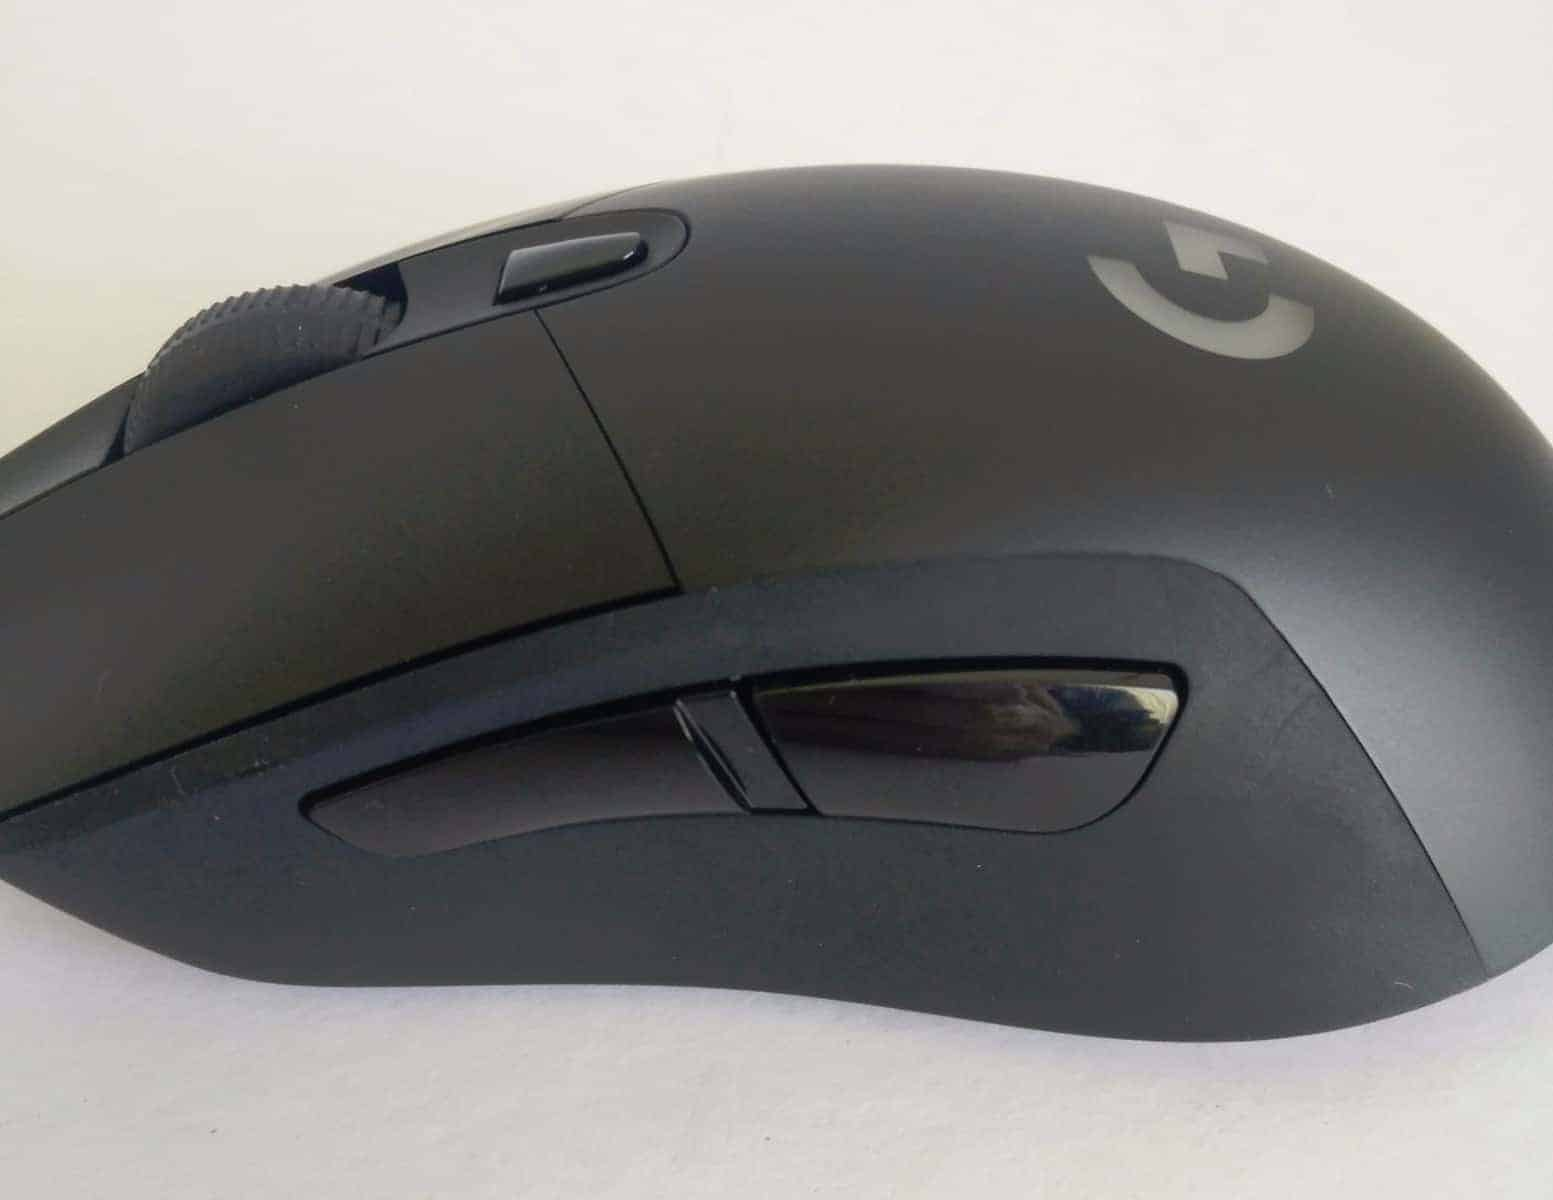 logitech-g403-Photos-08 Logitech G403 Prodigy Wired Gaming Mouse Review